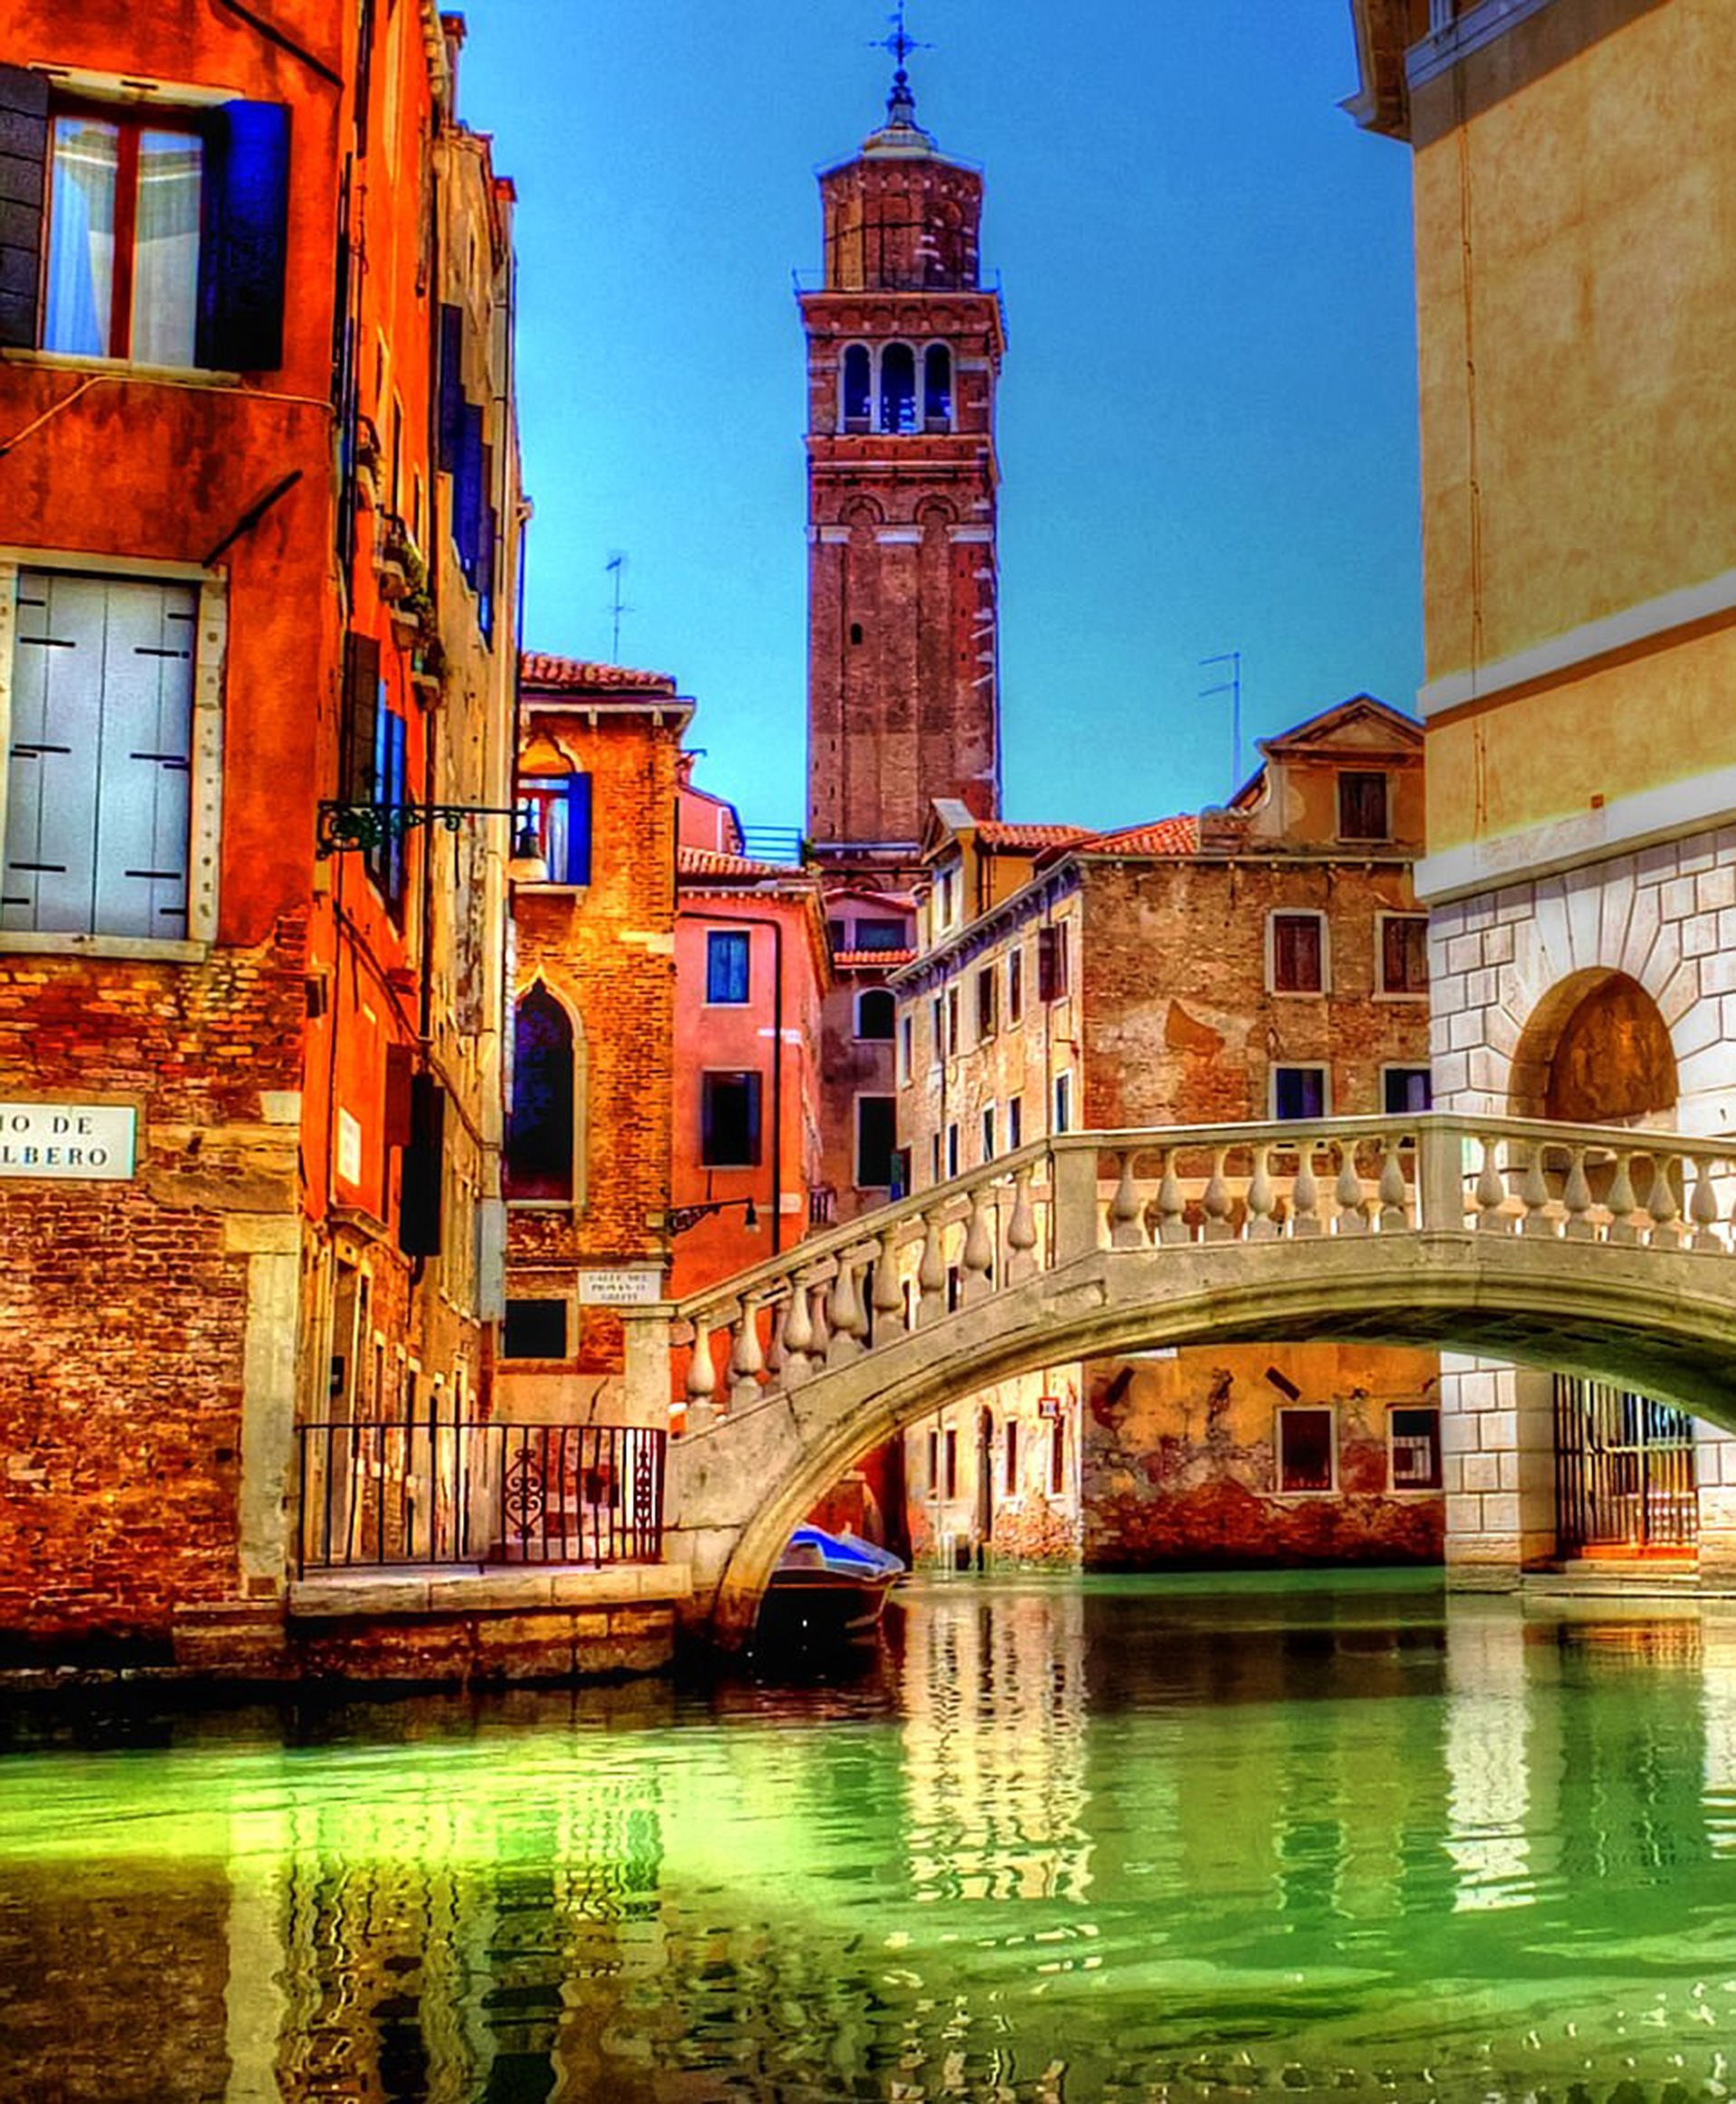 Venecia por Mike Morton